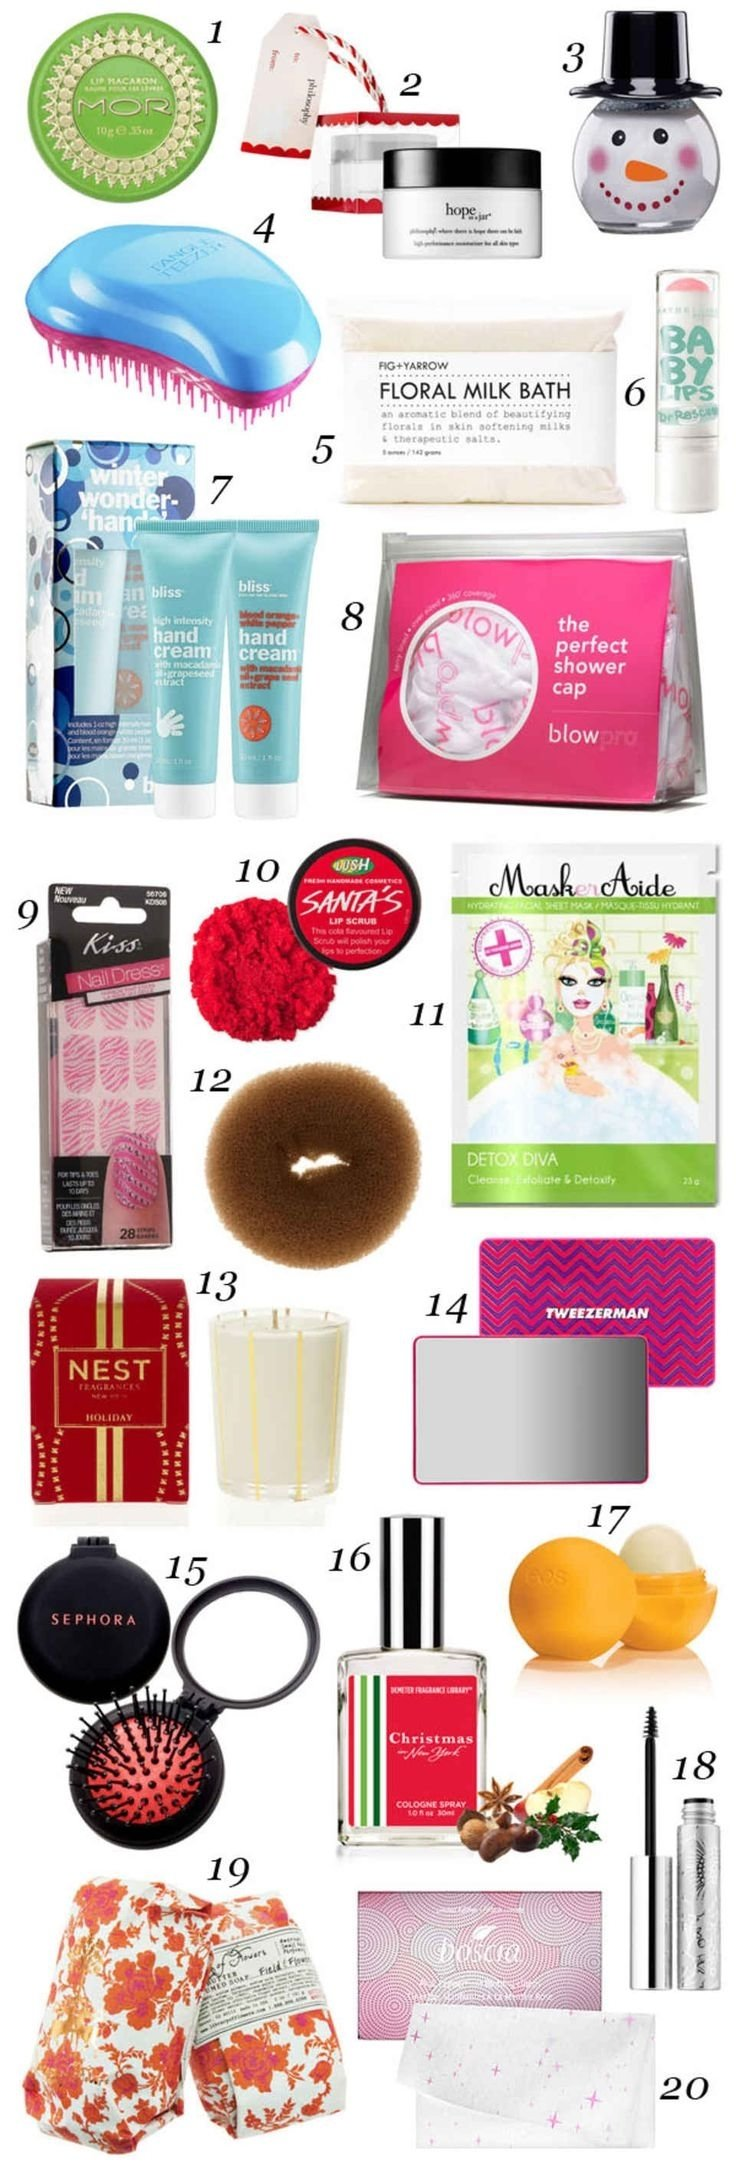 10 Great 2013 Gift Ideas For Women 1063 best gift ideas images on pinterest gift ideas birthdays and 9